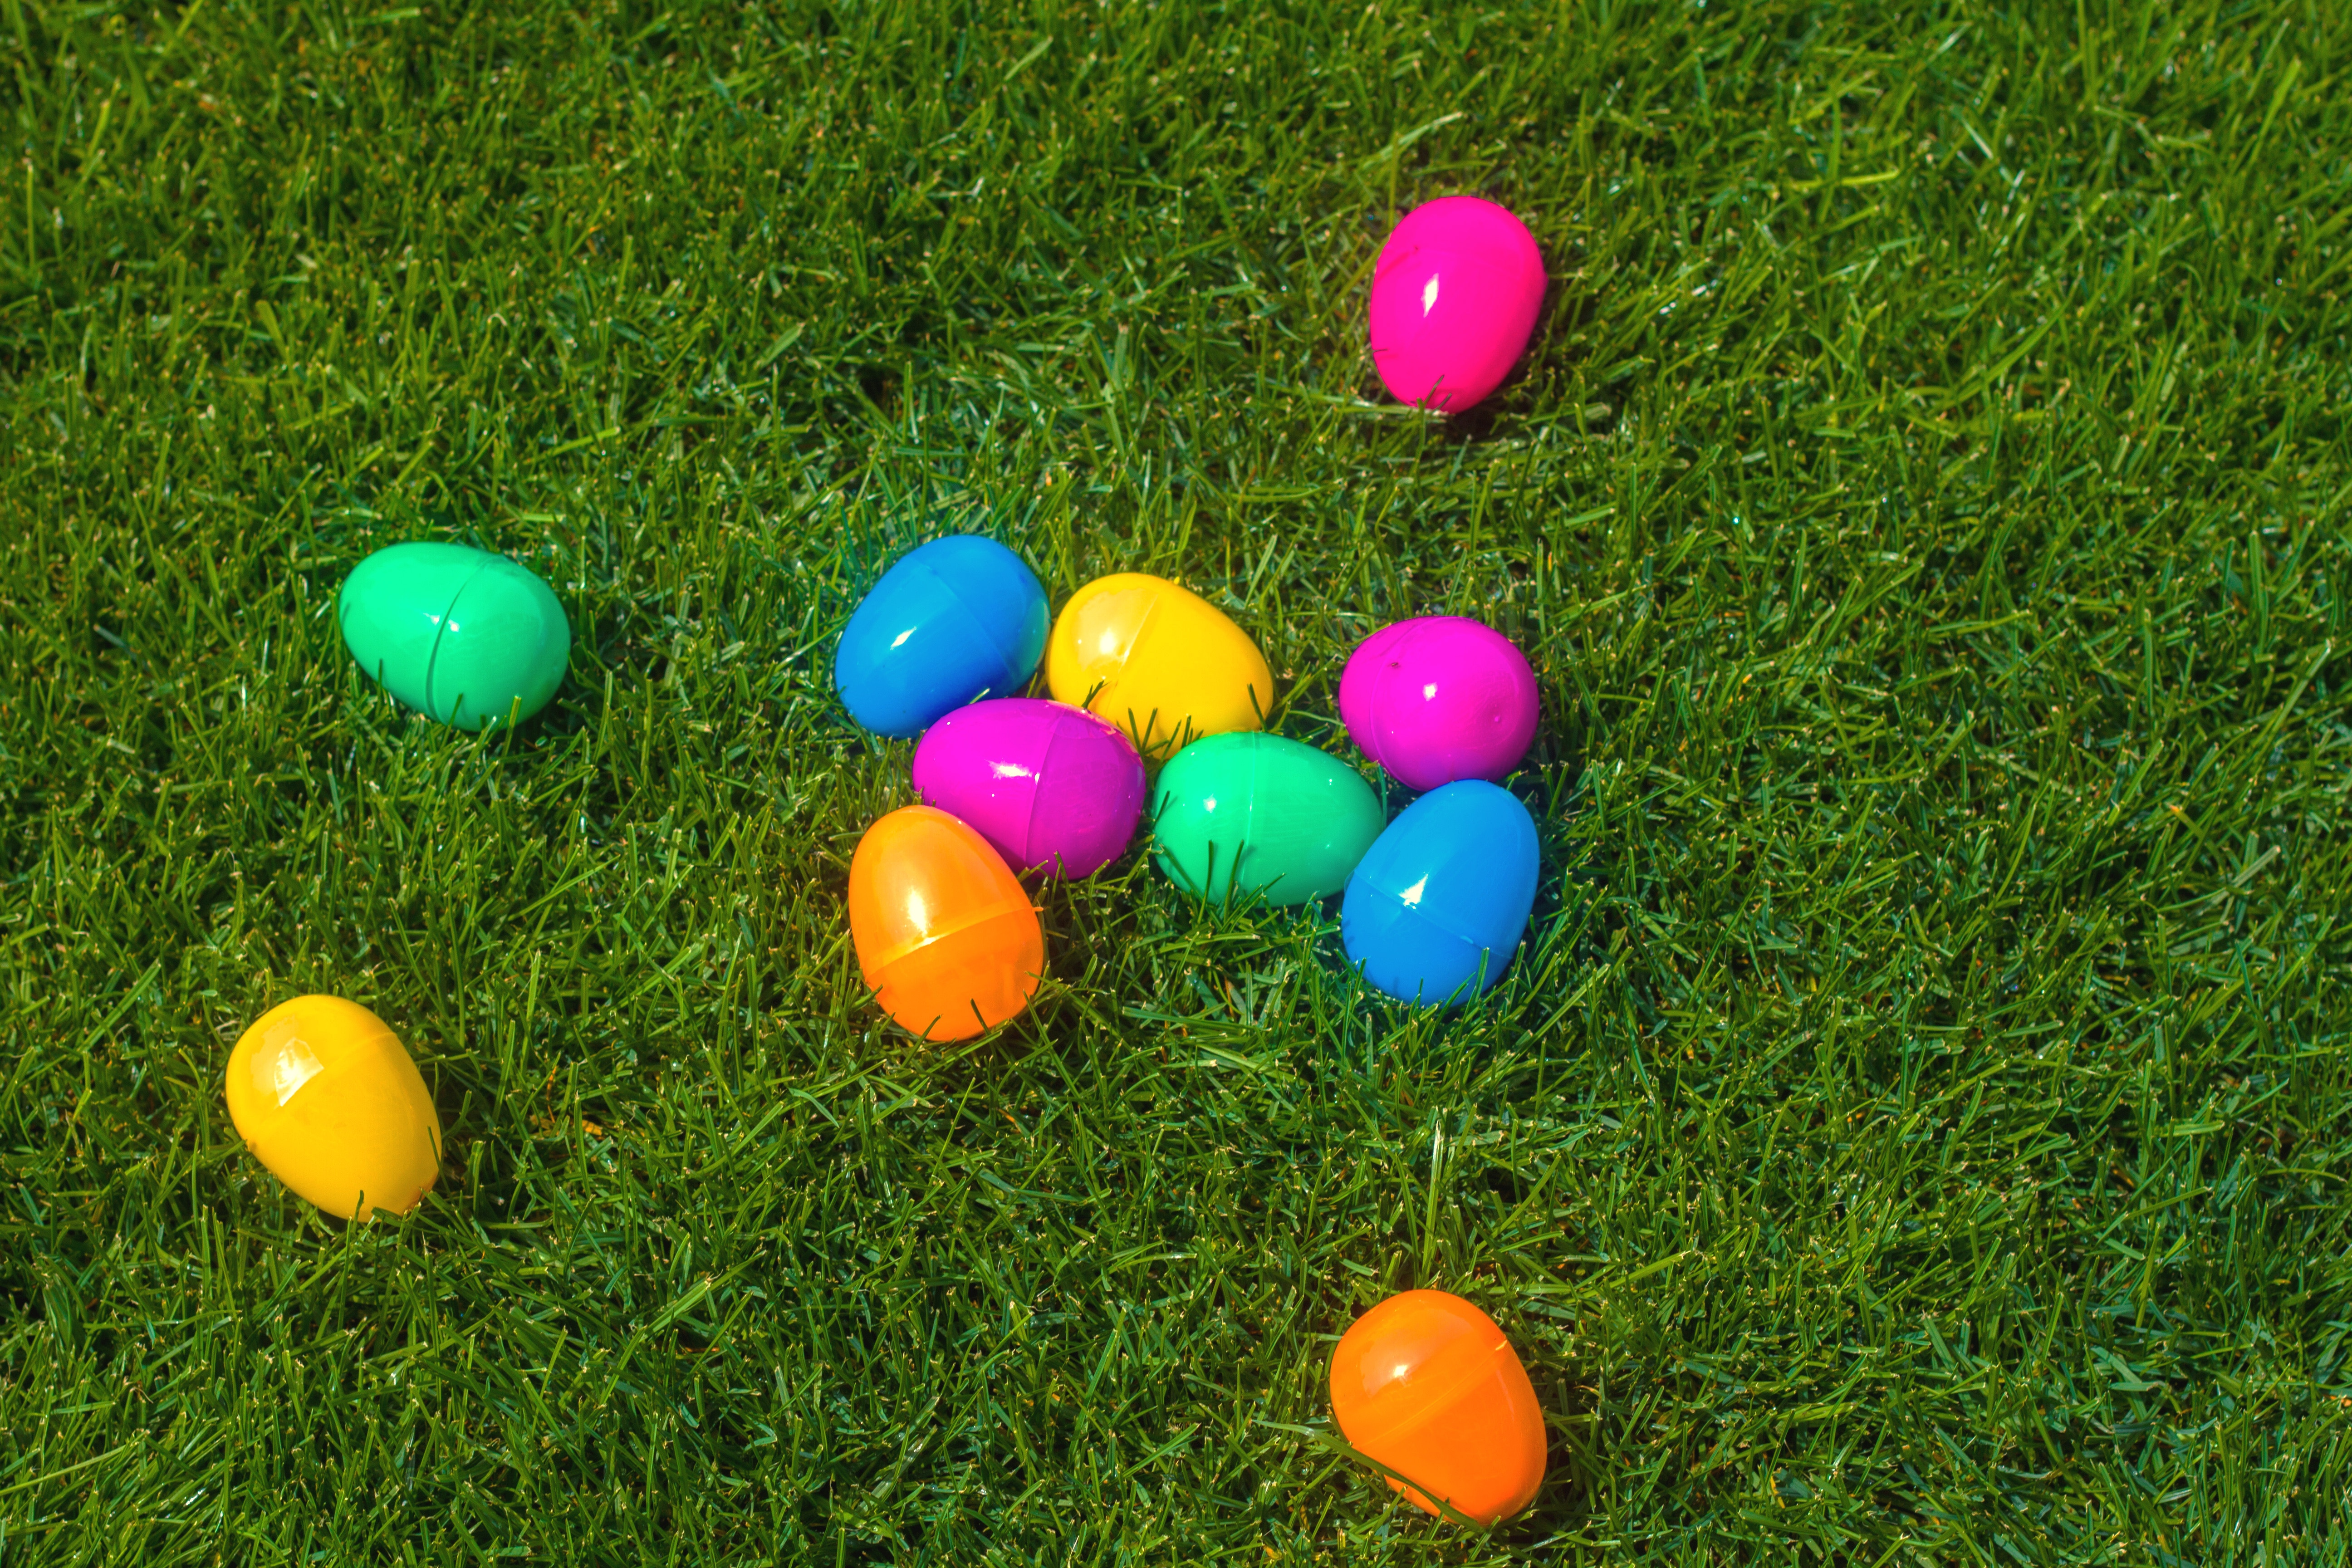 Everyone loves an egg hunt!